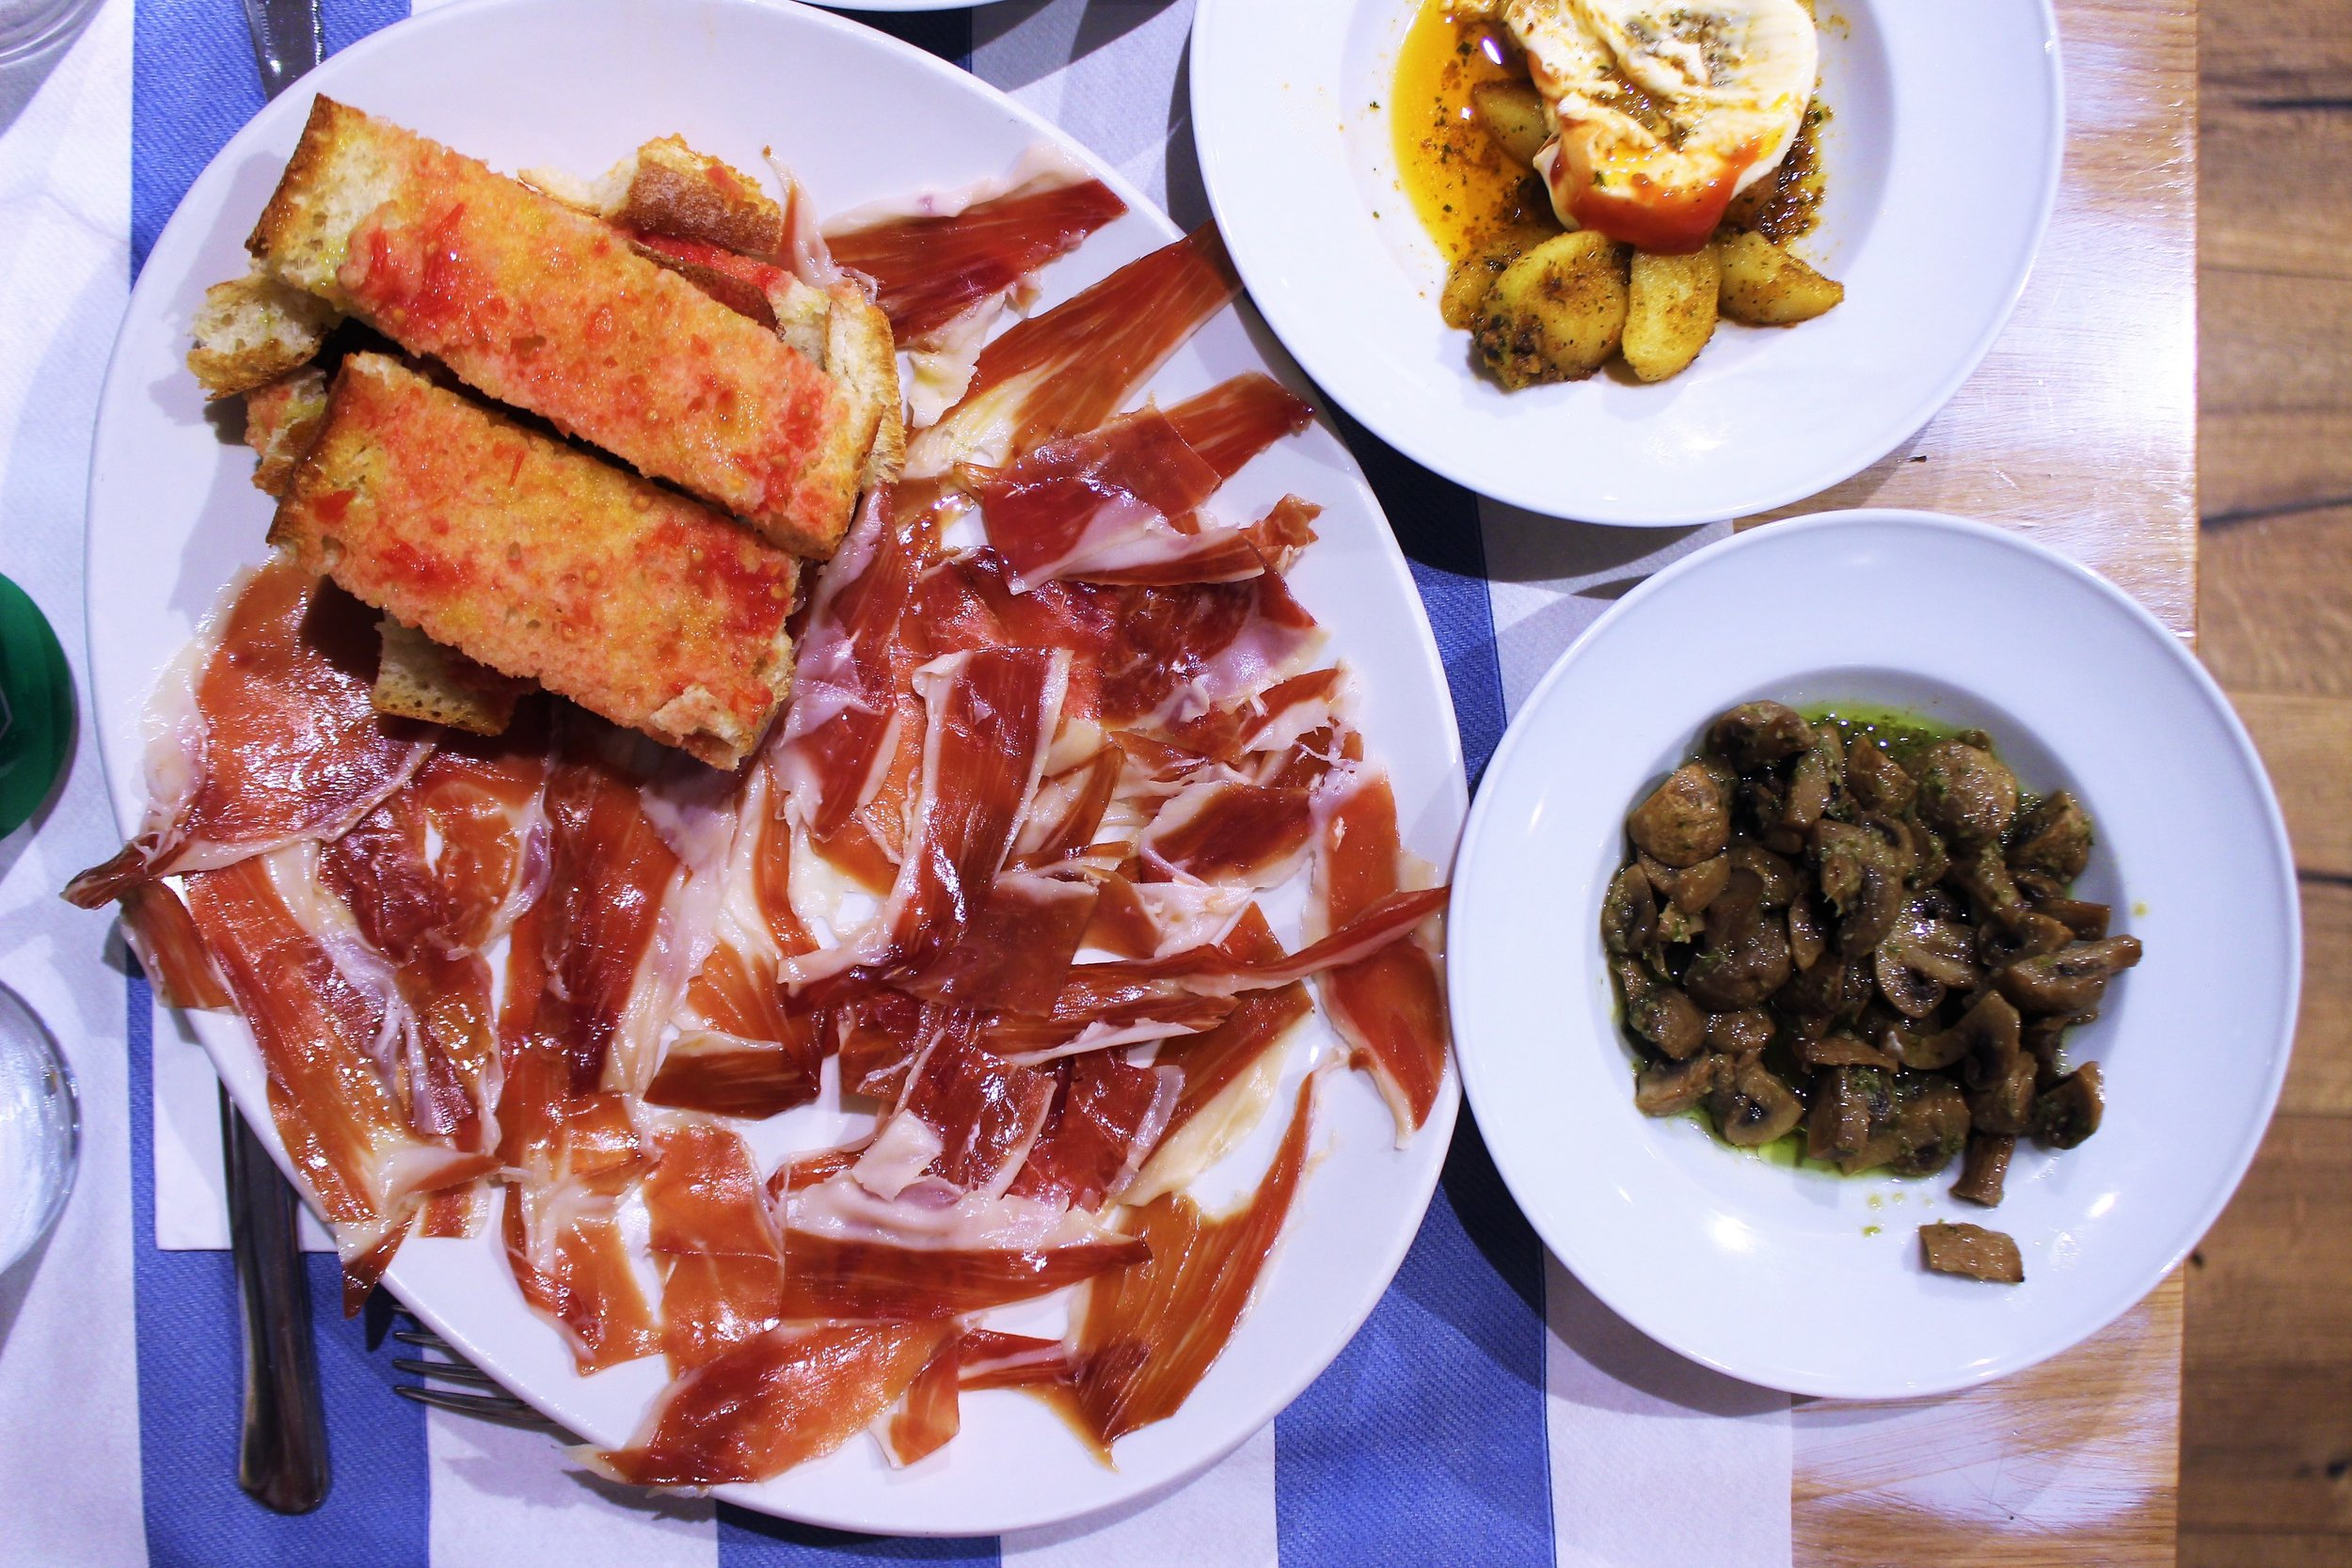 Special Cured Ham from Segovia with Toasted Bread and Tomato at Gustos Bcn in Barcelona